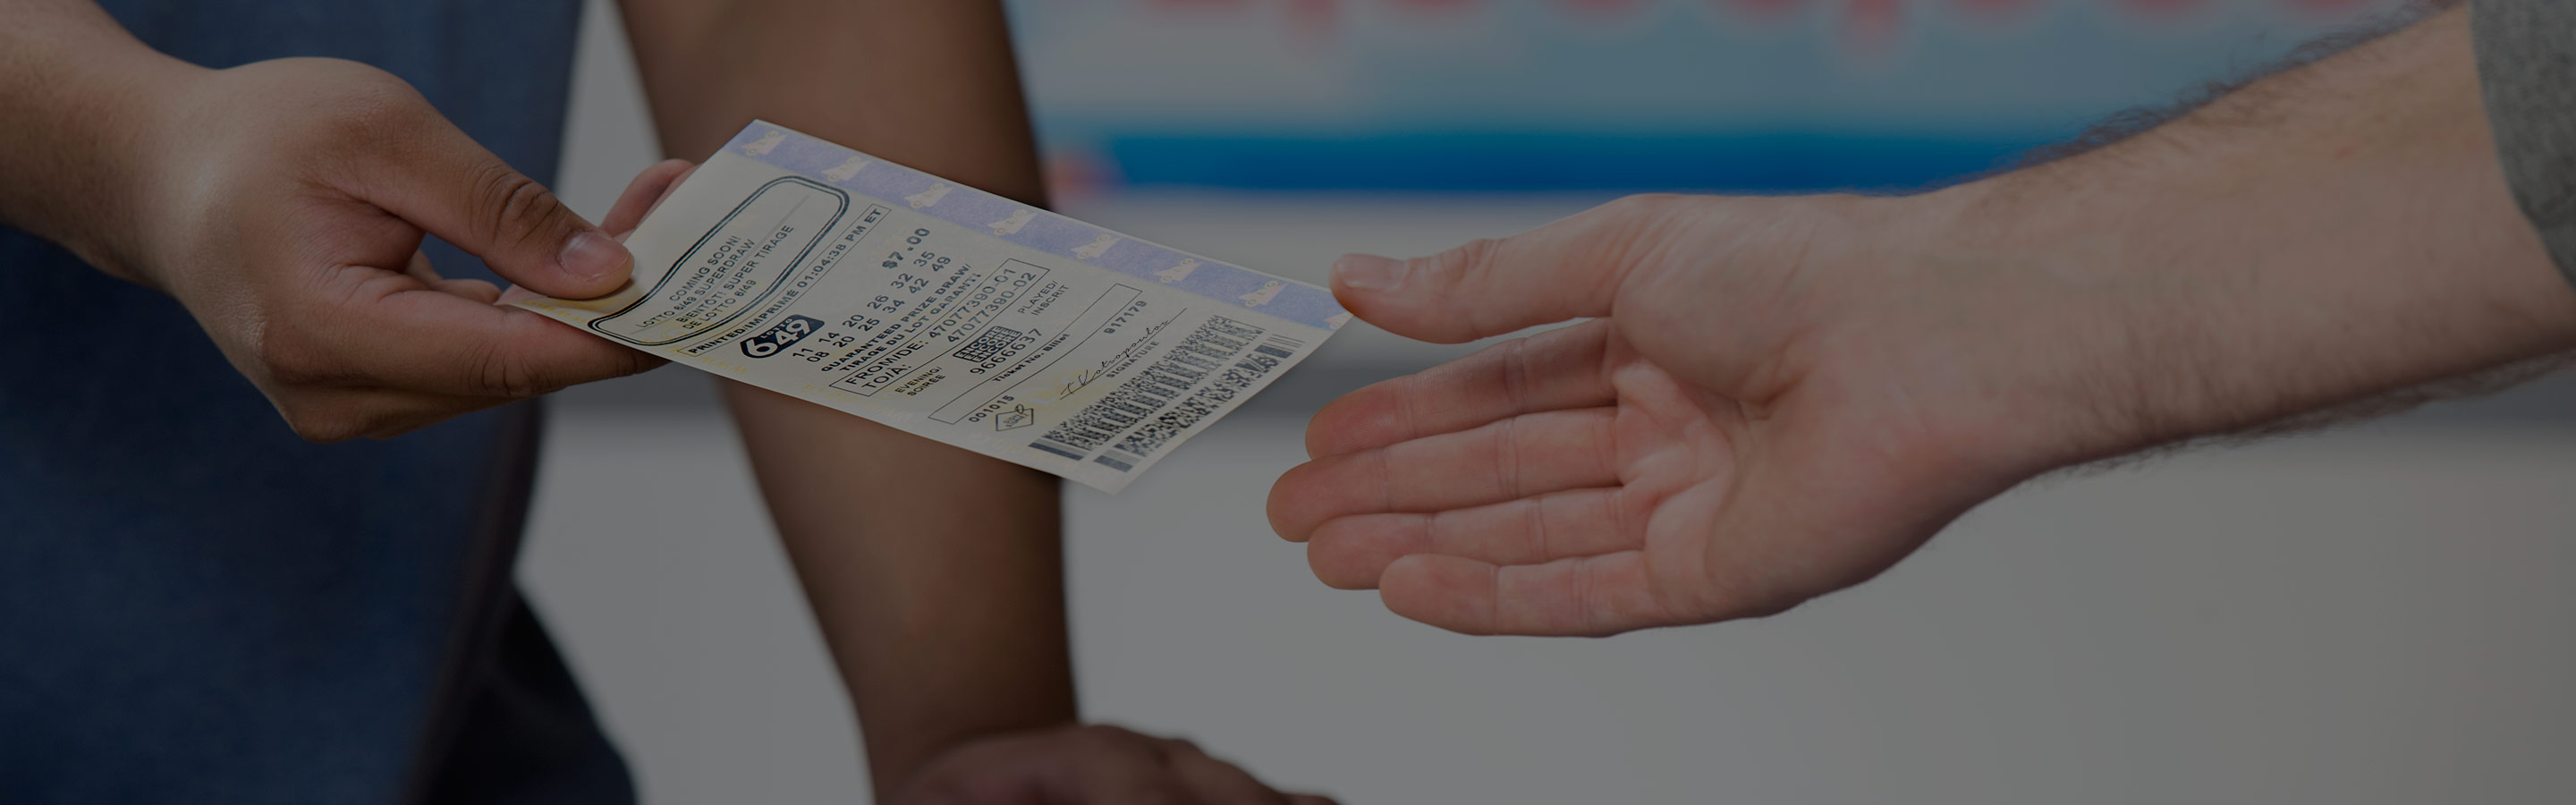 Close-up of person handing lottery ticket to another person